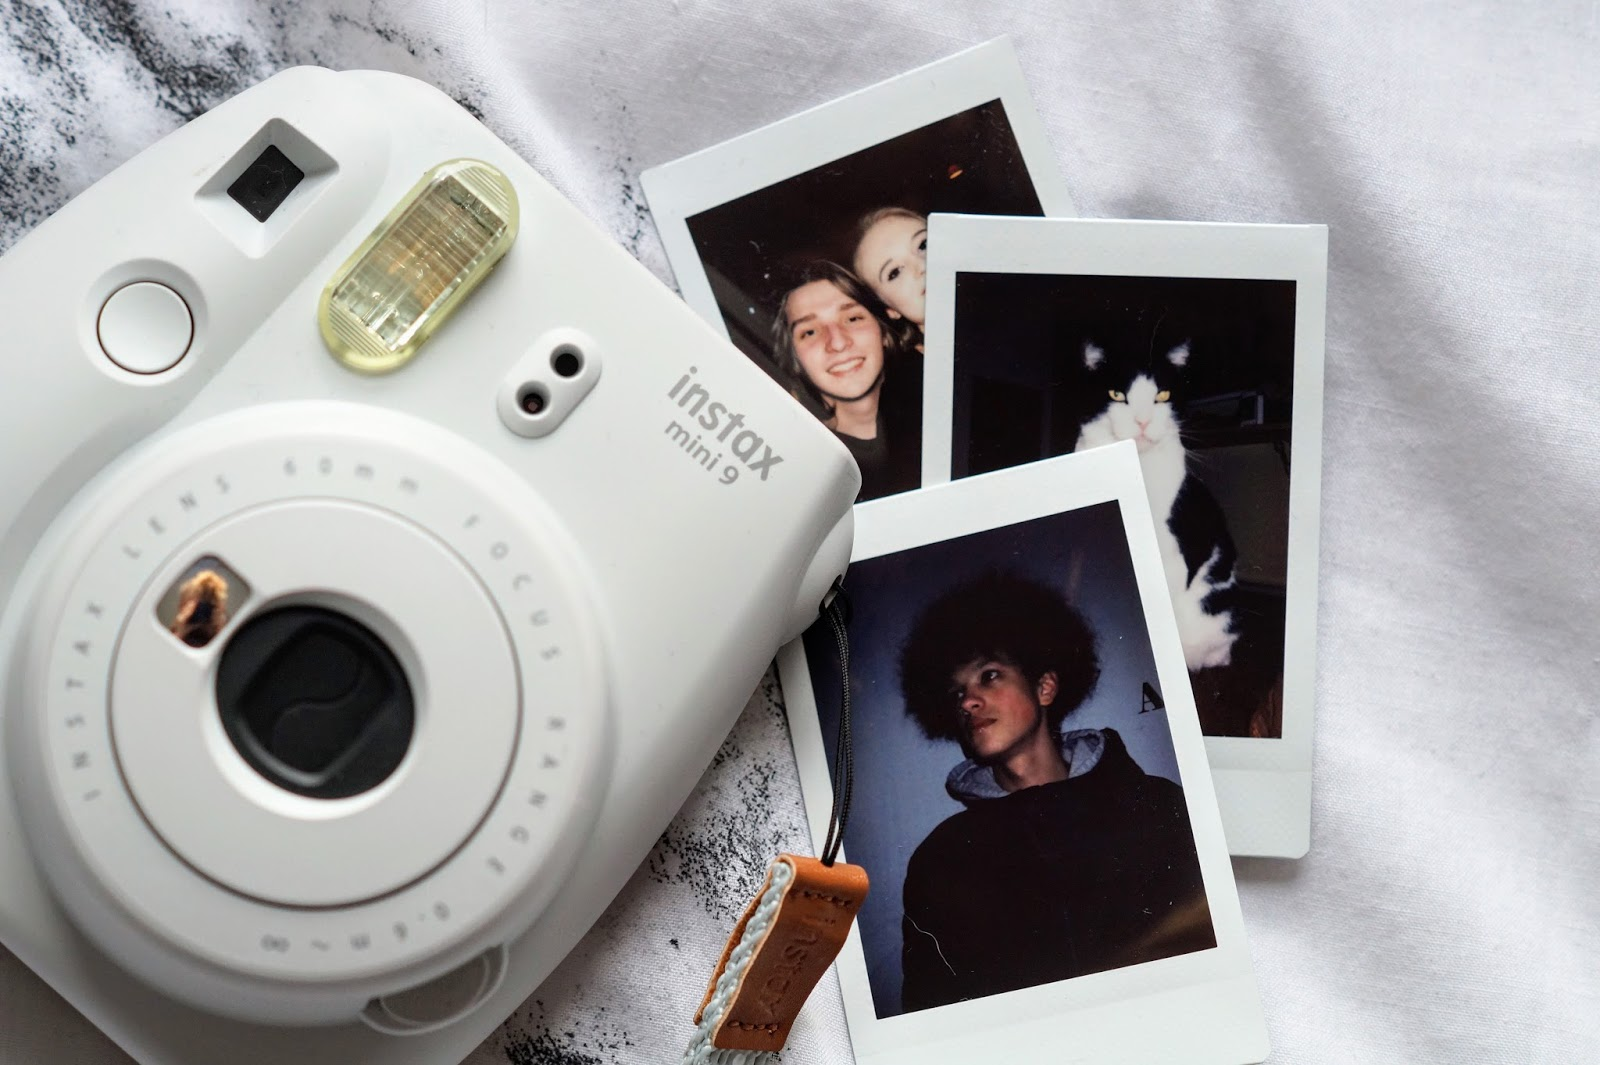 instax mini 9 camera with photos